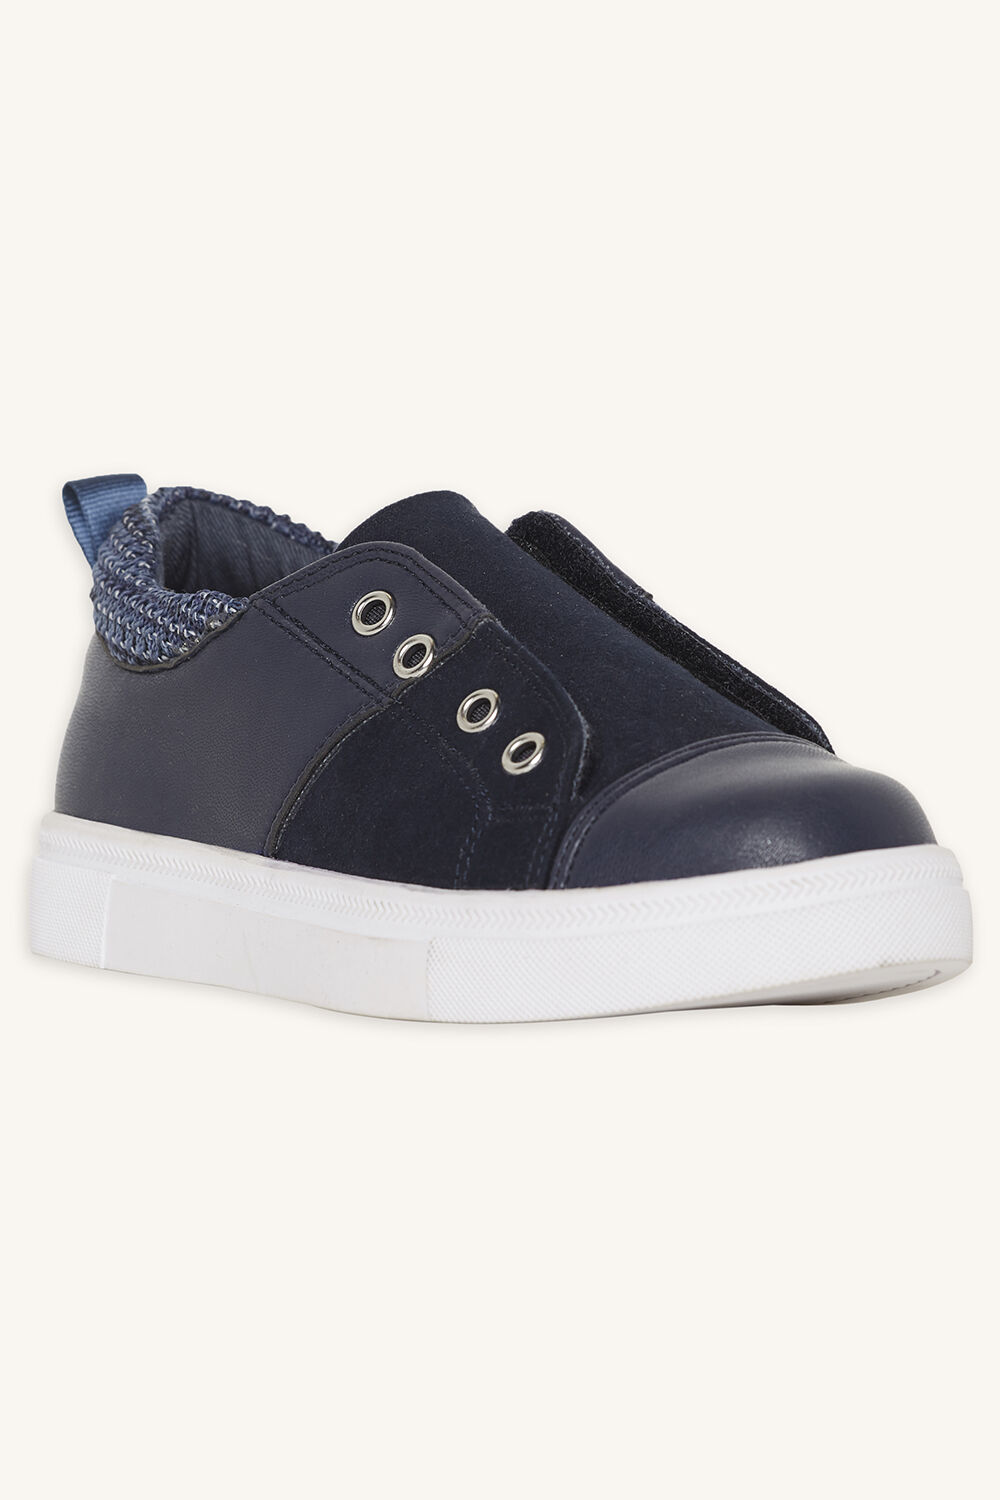 CONTRAST VELCRO SNEAKER in colour BLACK IRIS